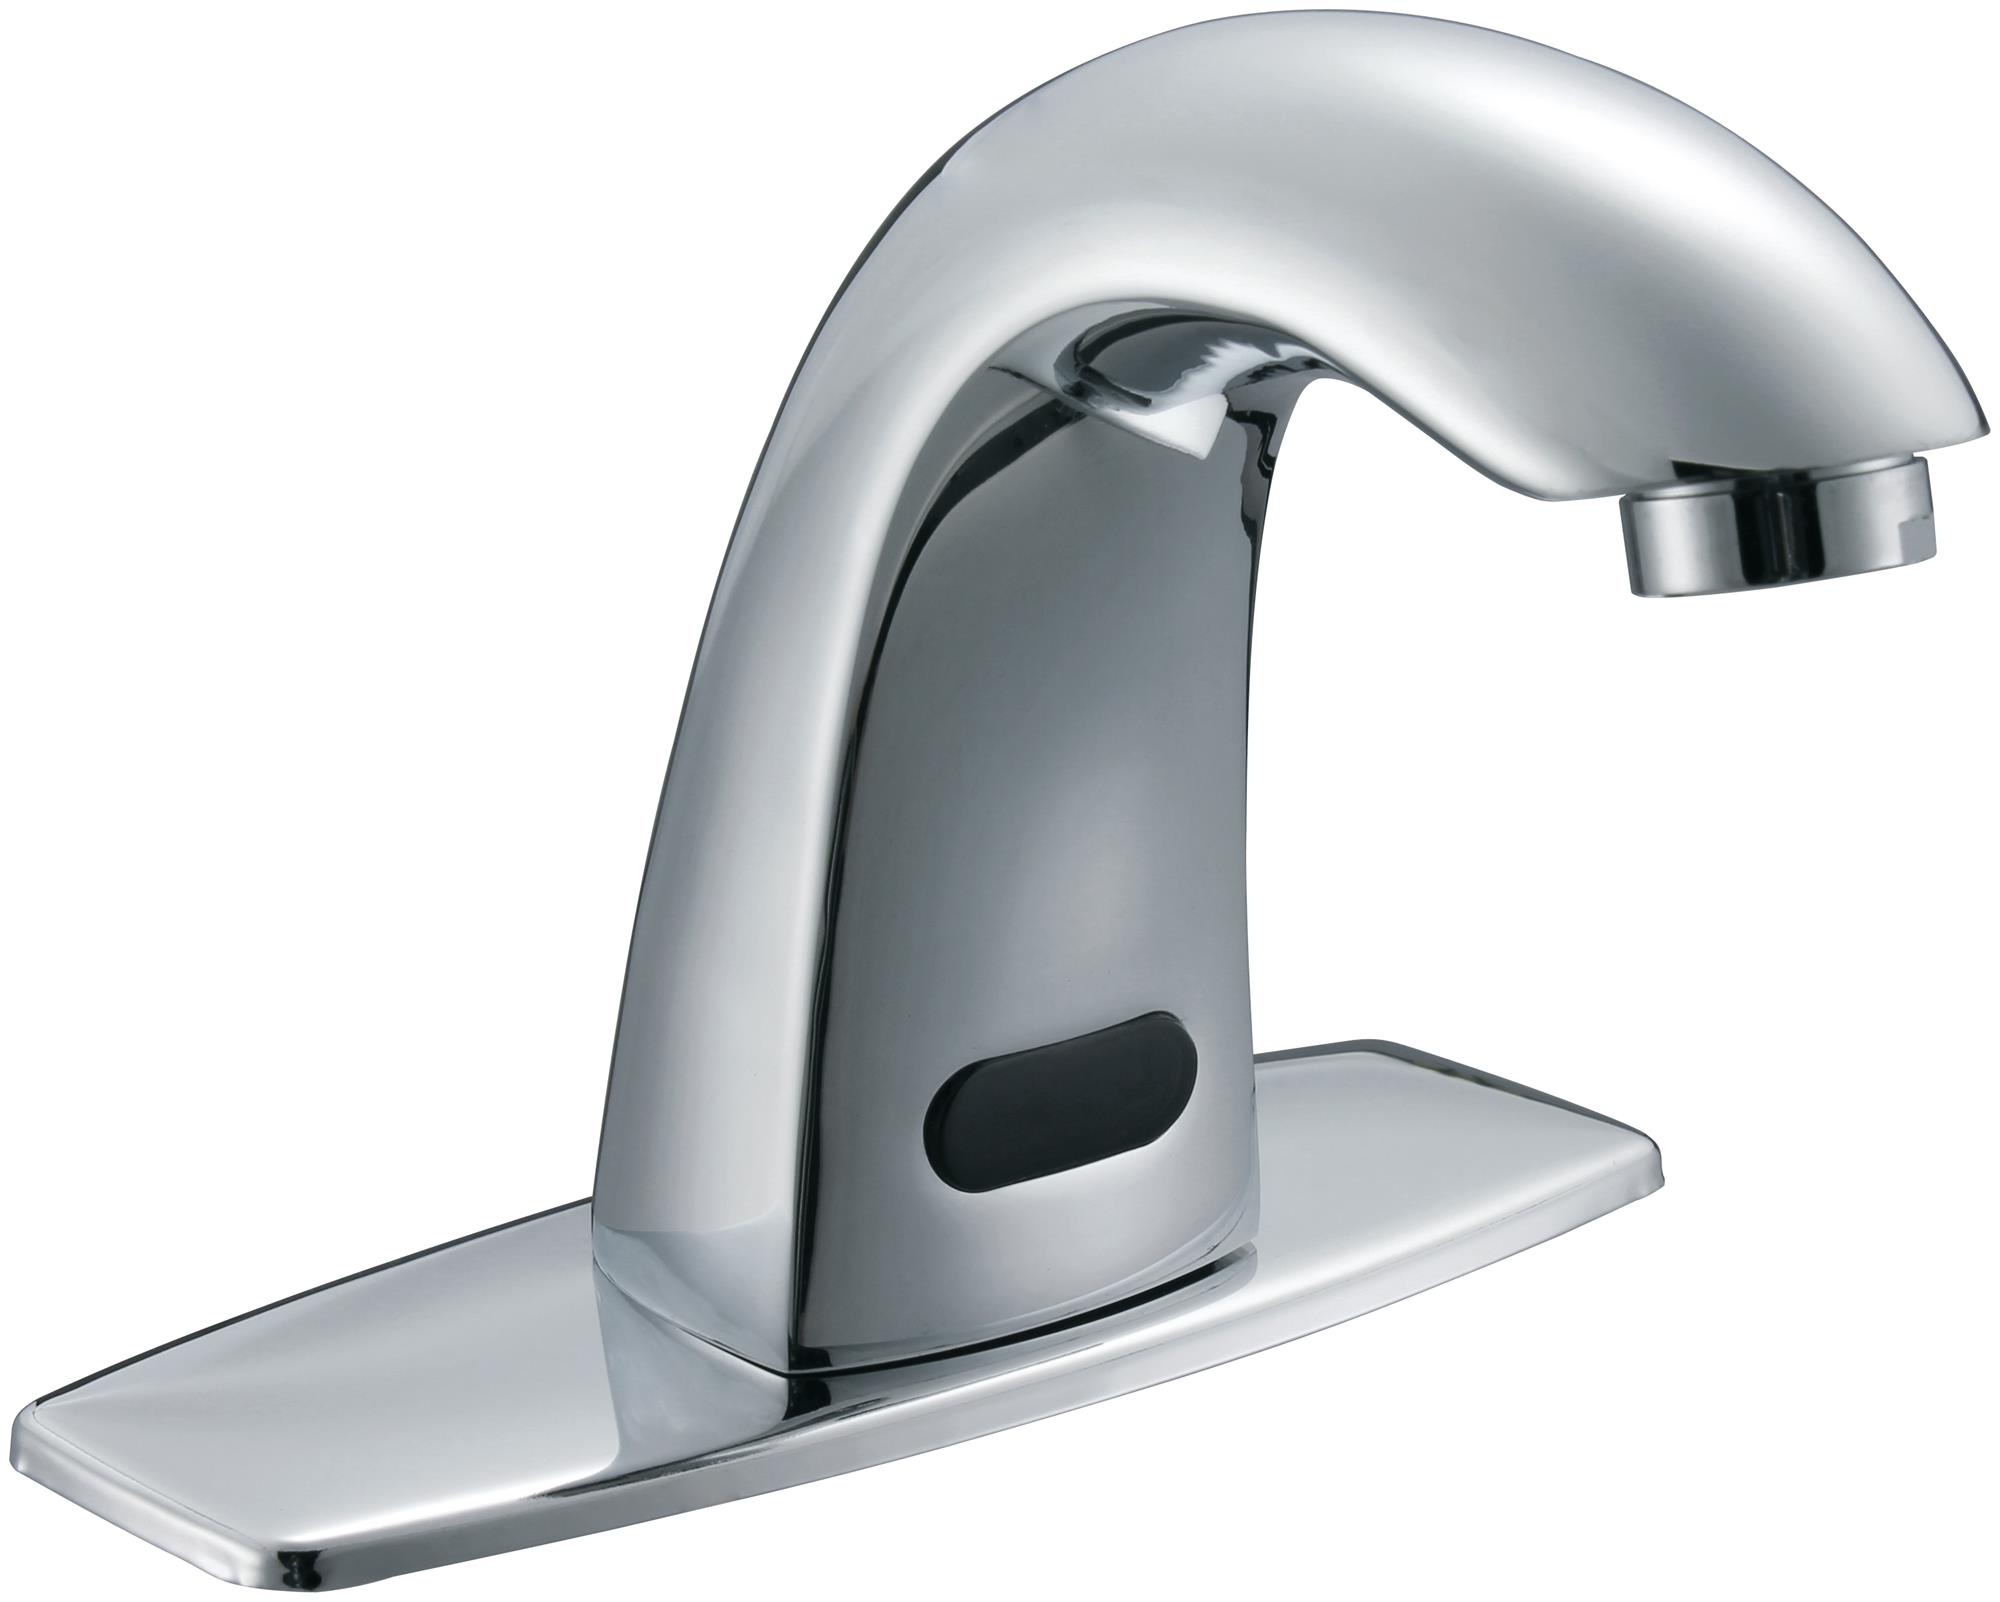 self-powered automatic faucet